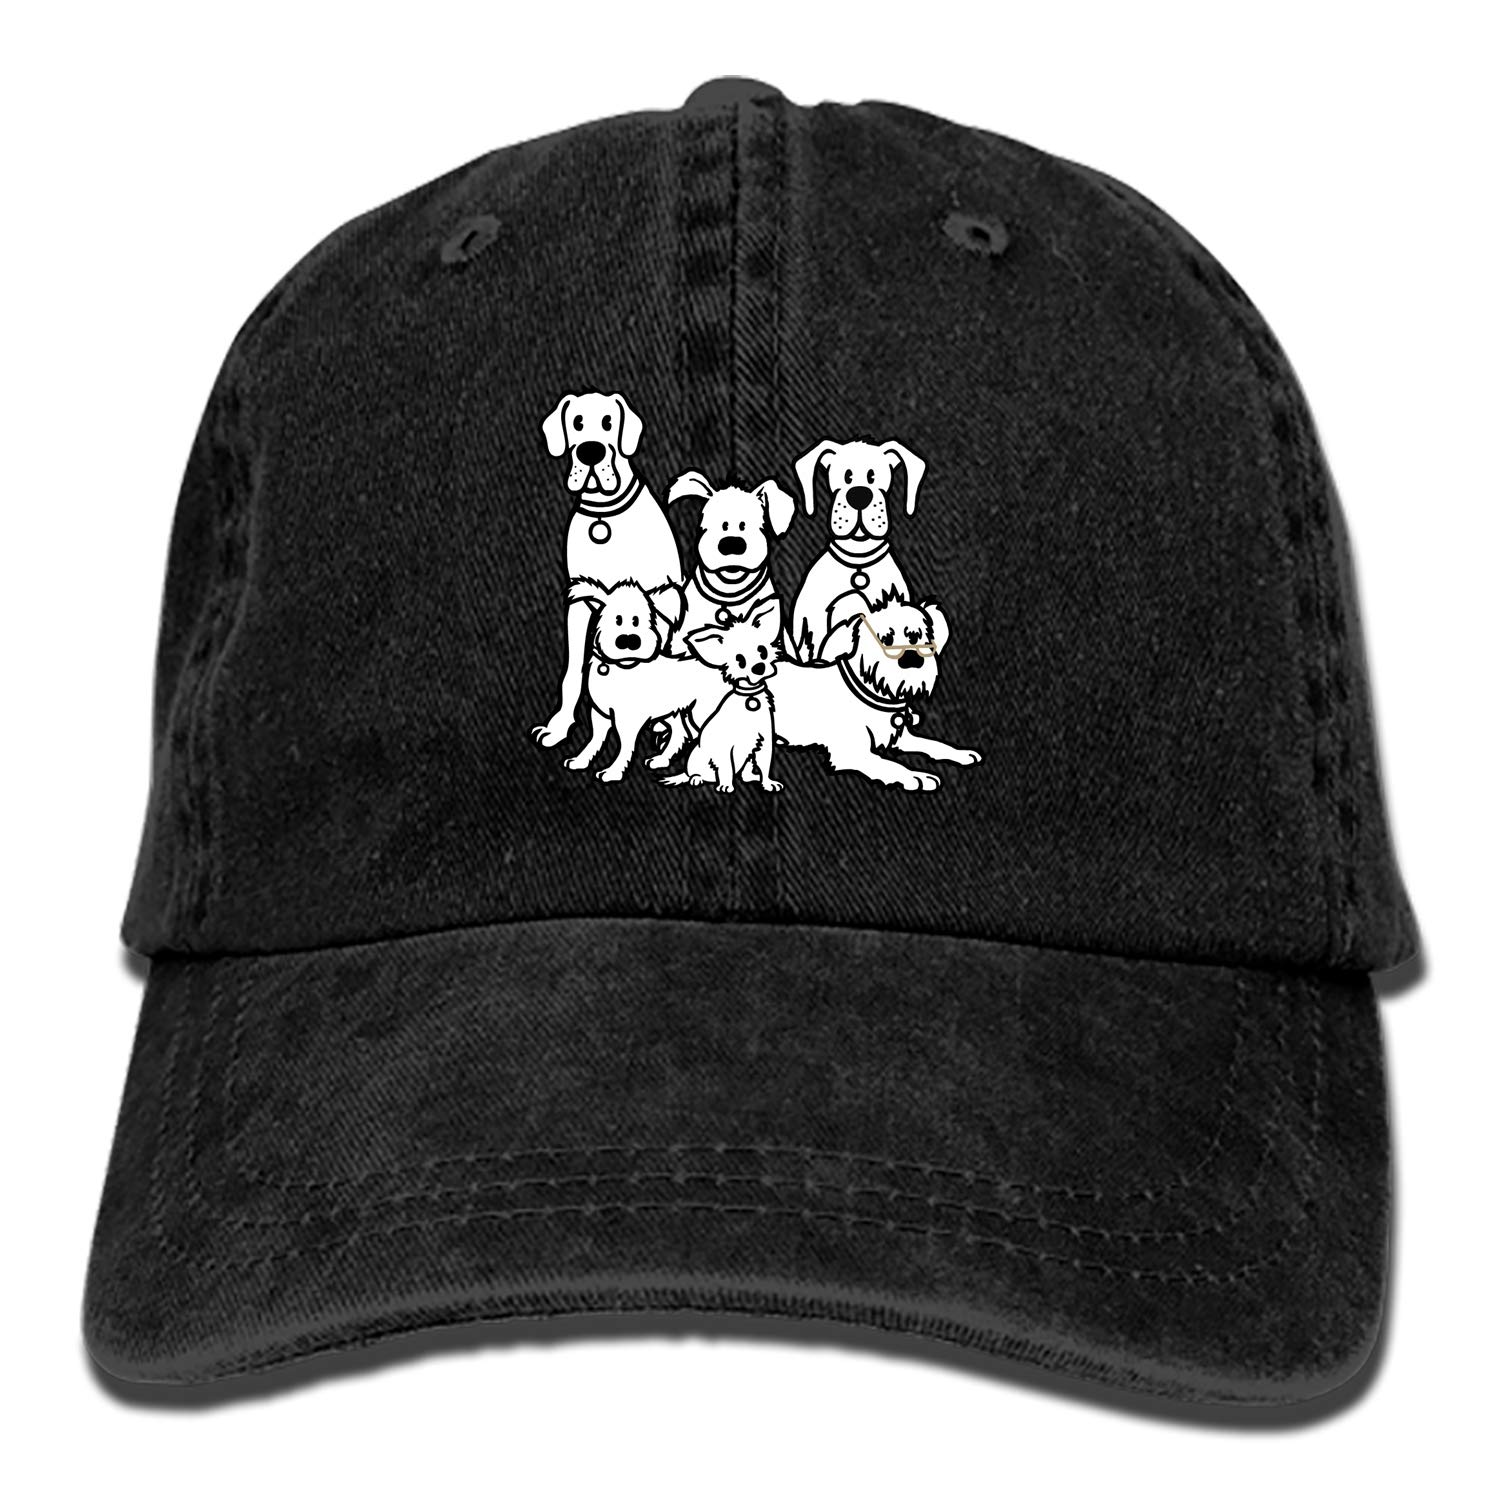 Doggie Style Pets Classic Washed Cotton Baseball Cap Hip Hop Adjustable Dad Hat